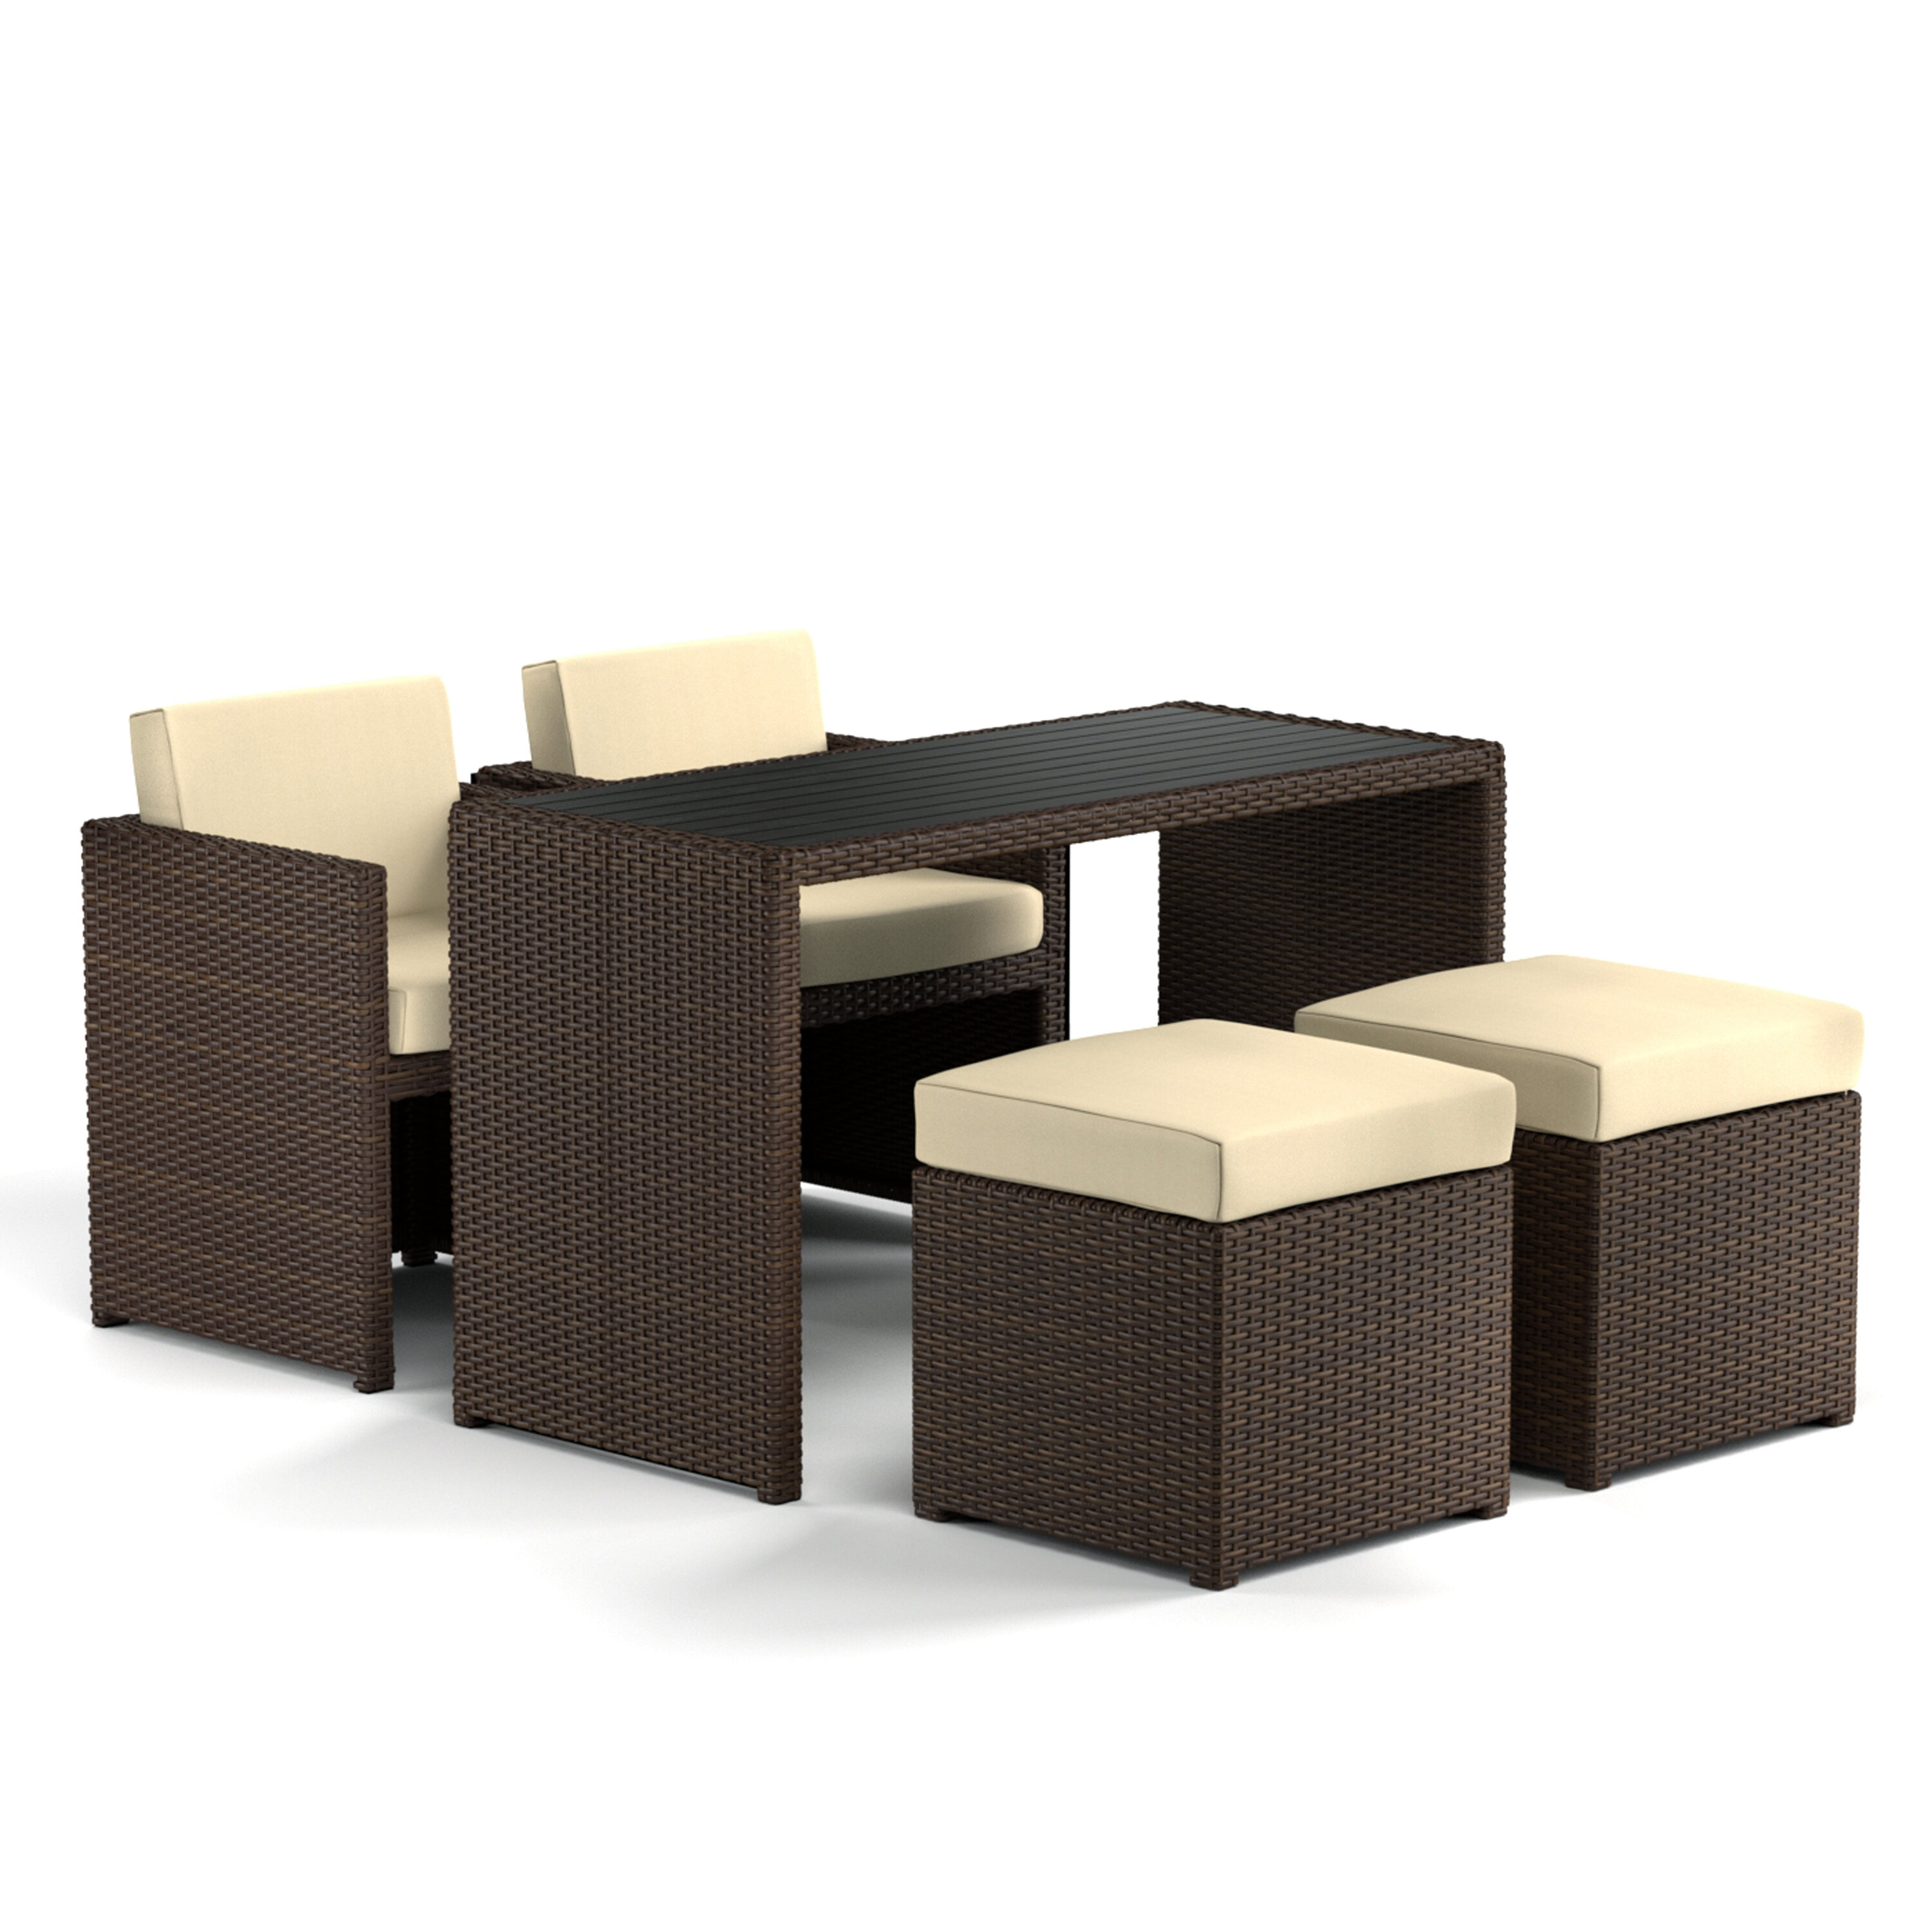 Insley 5 Piece Dining Set With Cushion With Most Up To Date Berrios 3 Piece Counter Height Dining Sets (View 15 of 20)